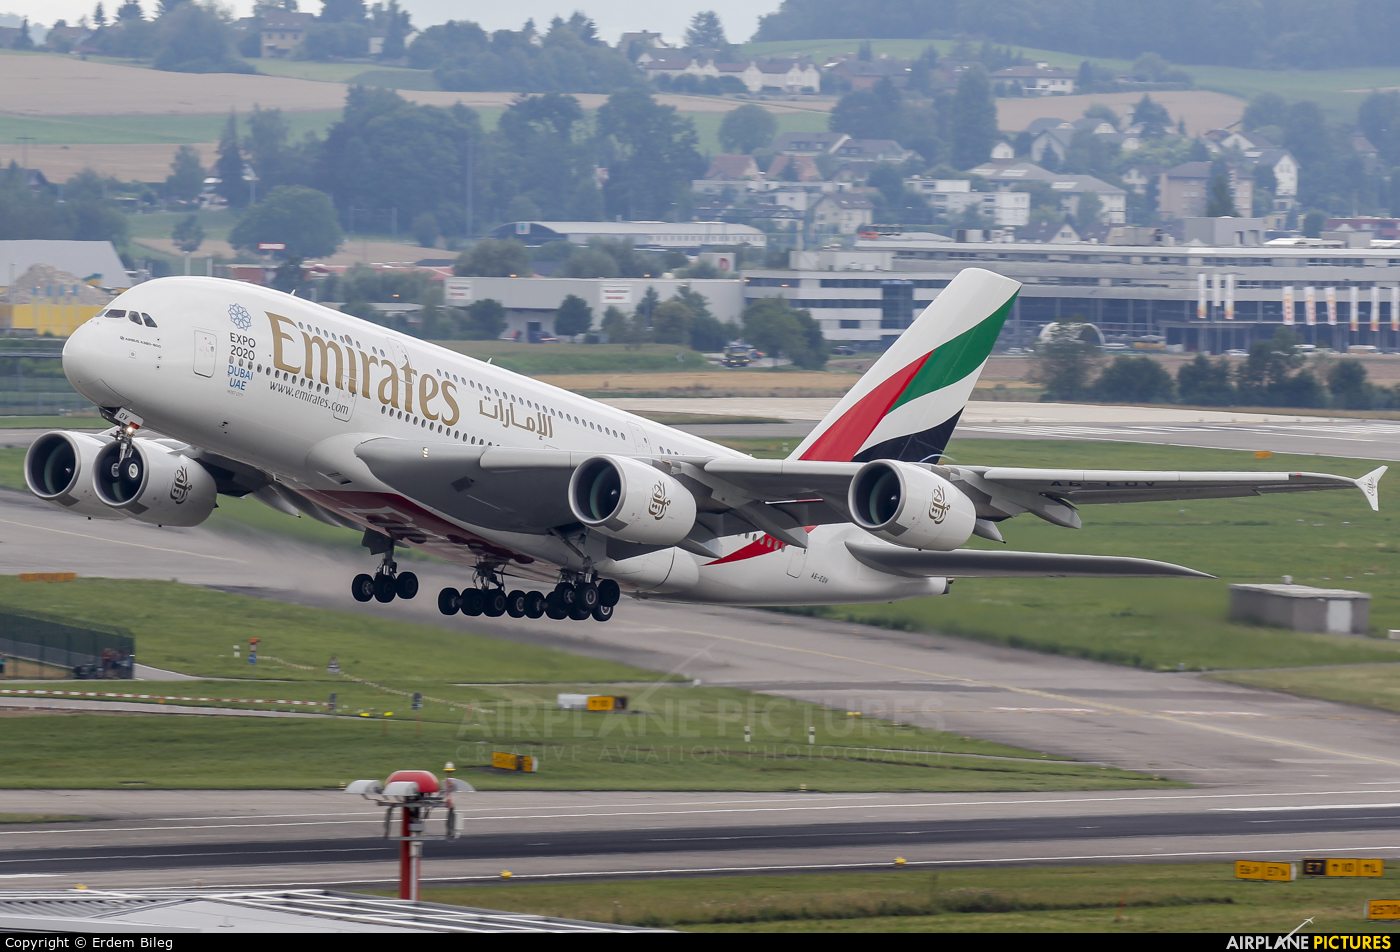 Emirates Airlines A6-EOV aircraft at Zurich